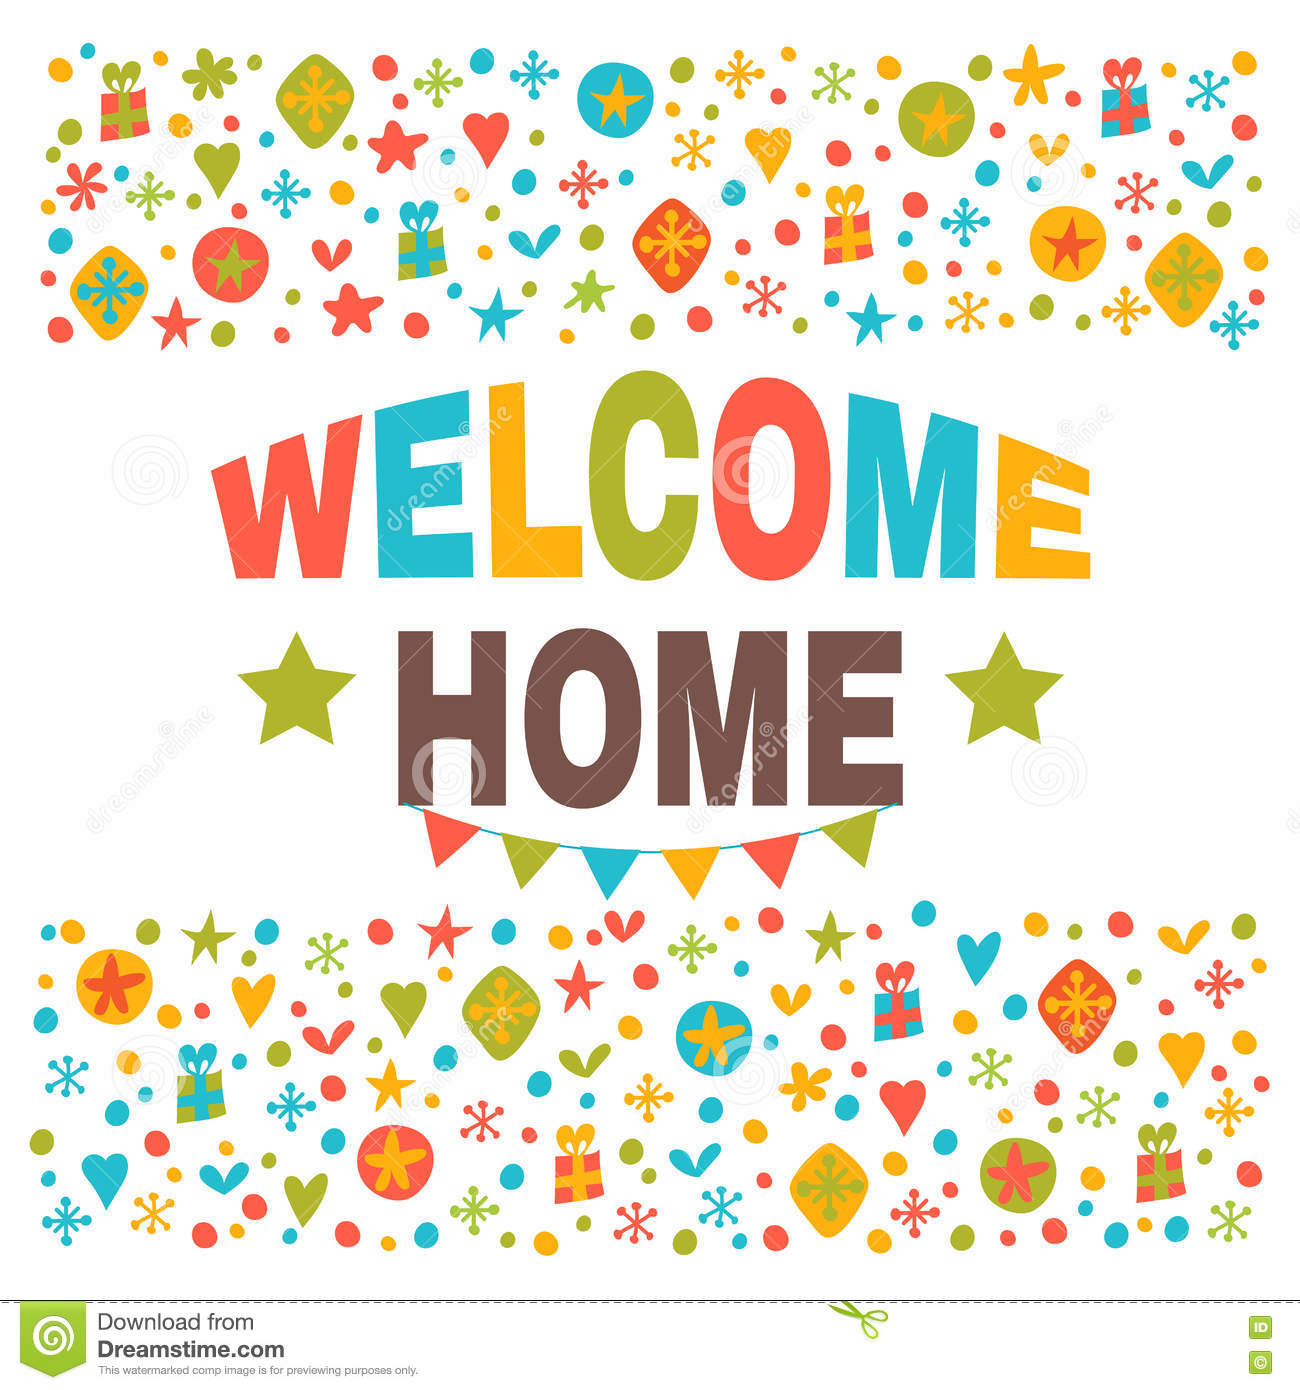 welcome-home-text-colorful-design-elements-cute-postcard-decorative-lettering-vector-illustration-72595476.jpg